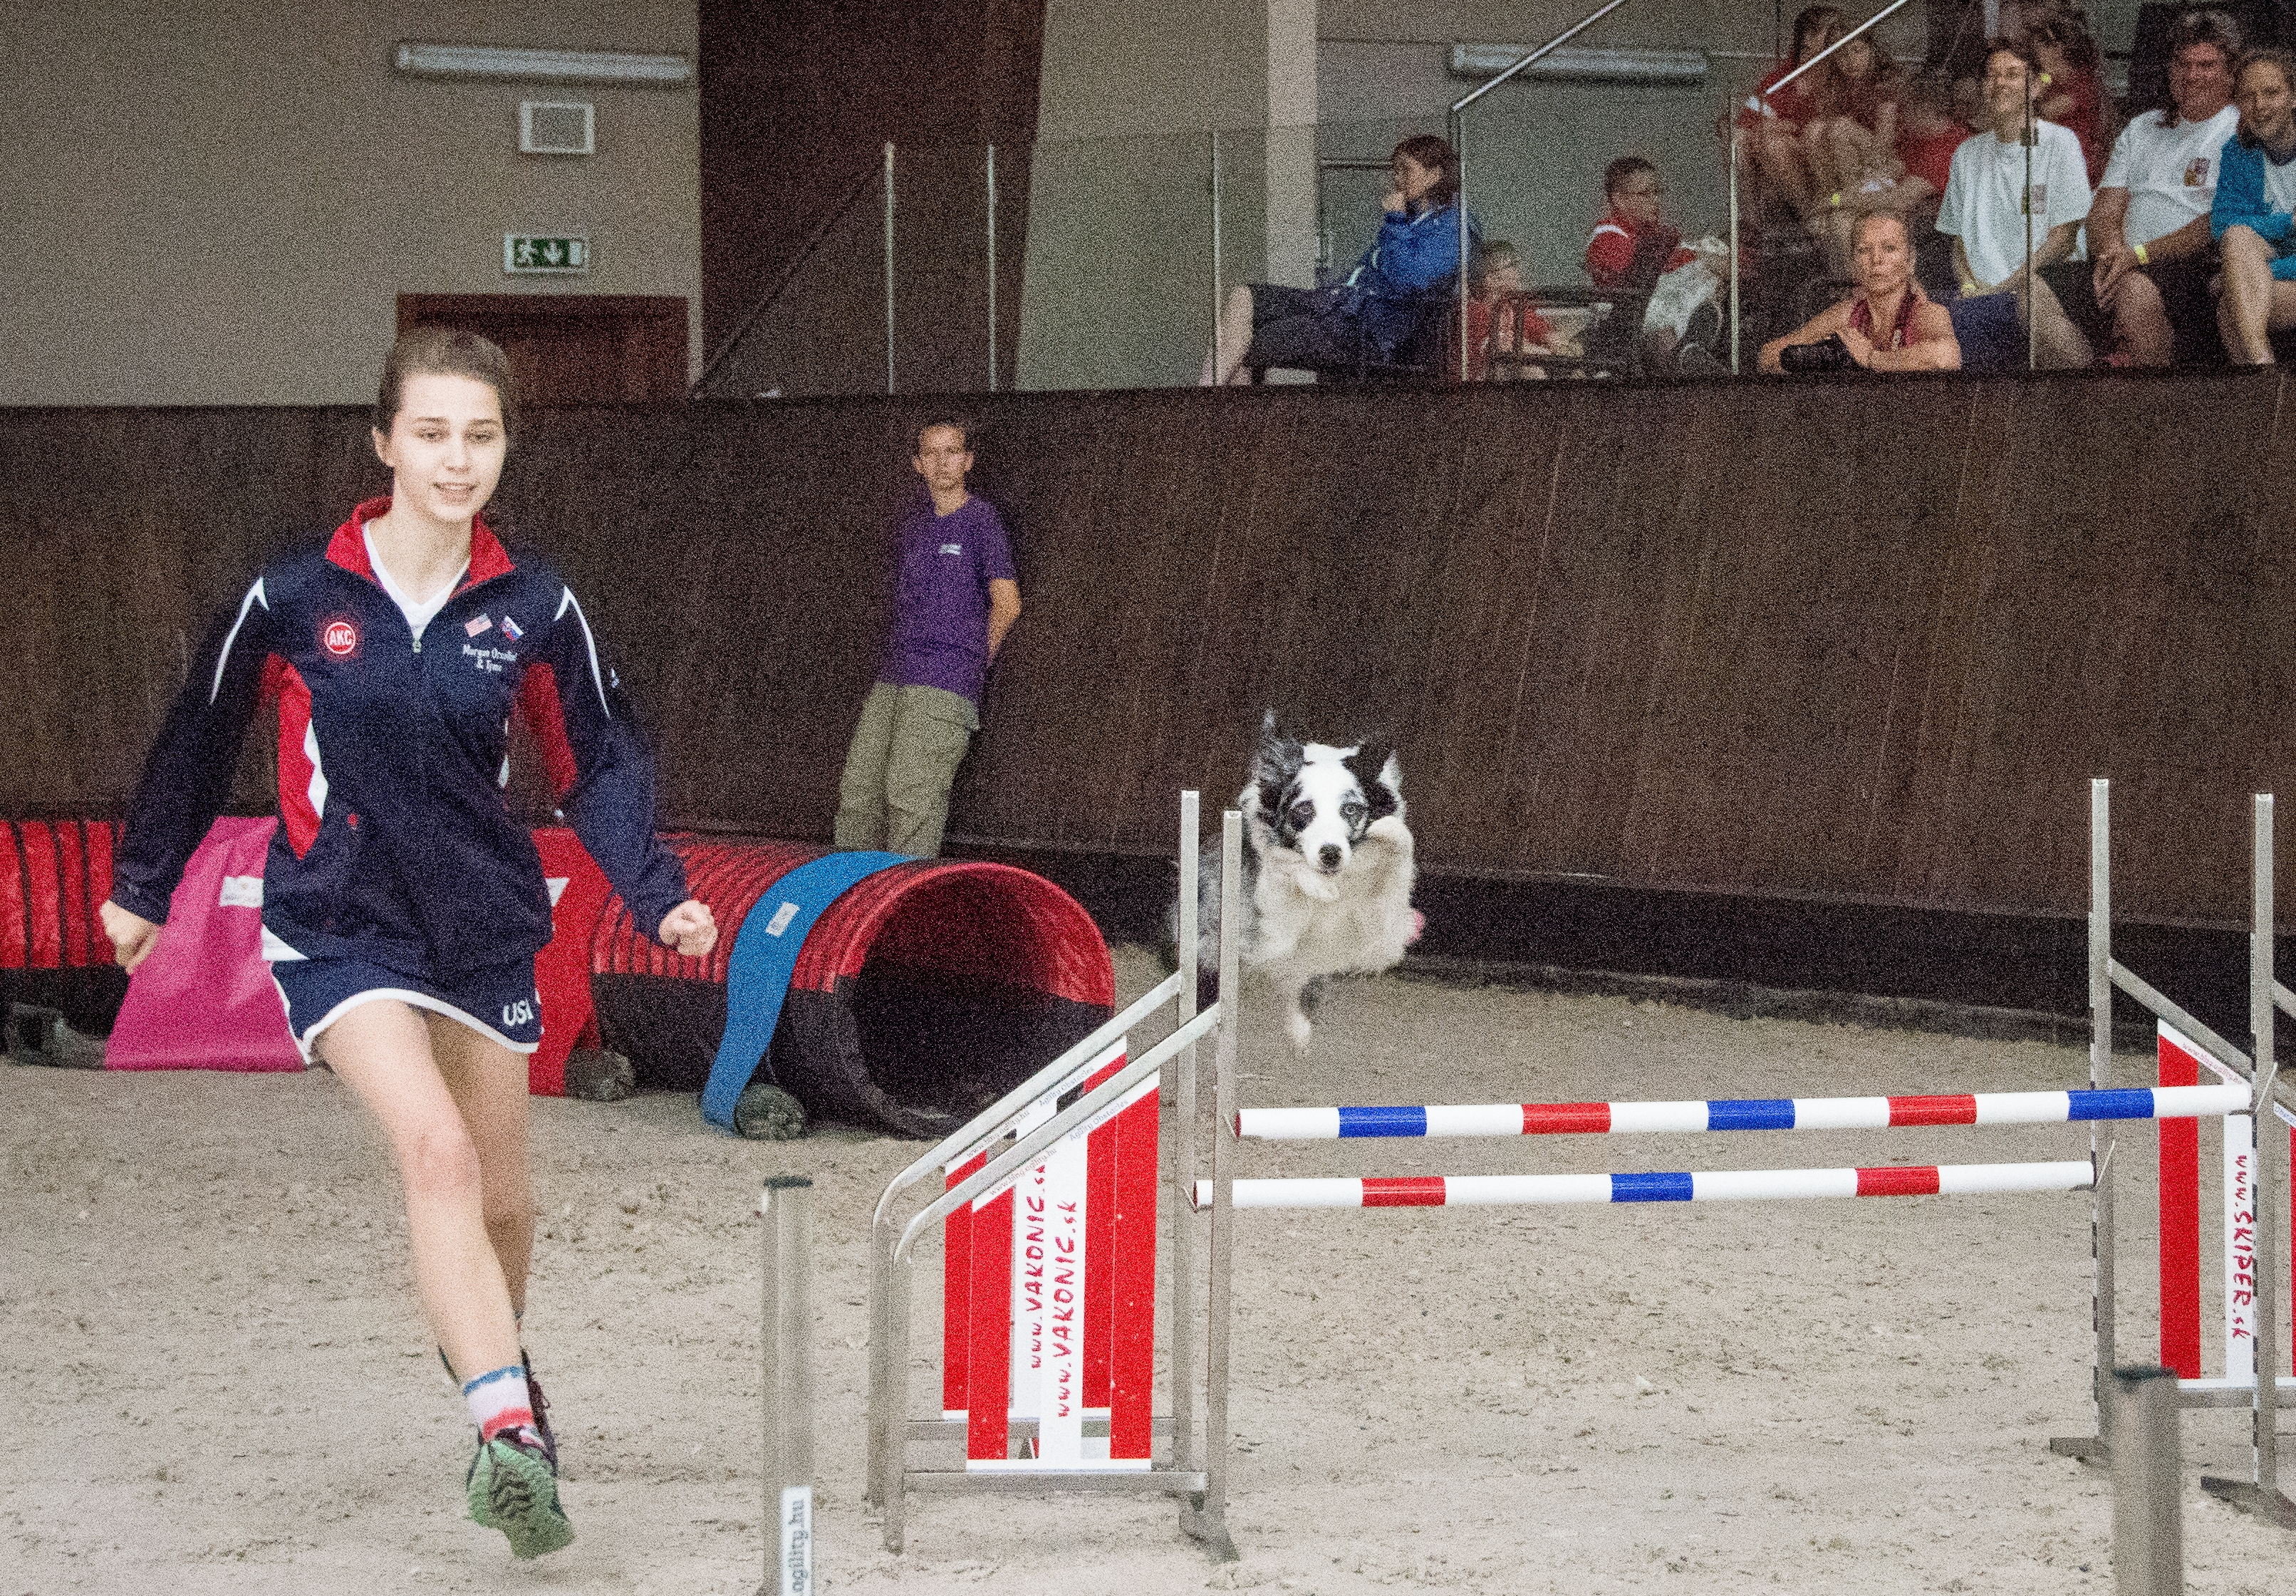 LOCAL TEEN COMPETES IN EUROPEAN OPEN DOG AGILITY